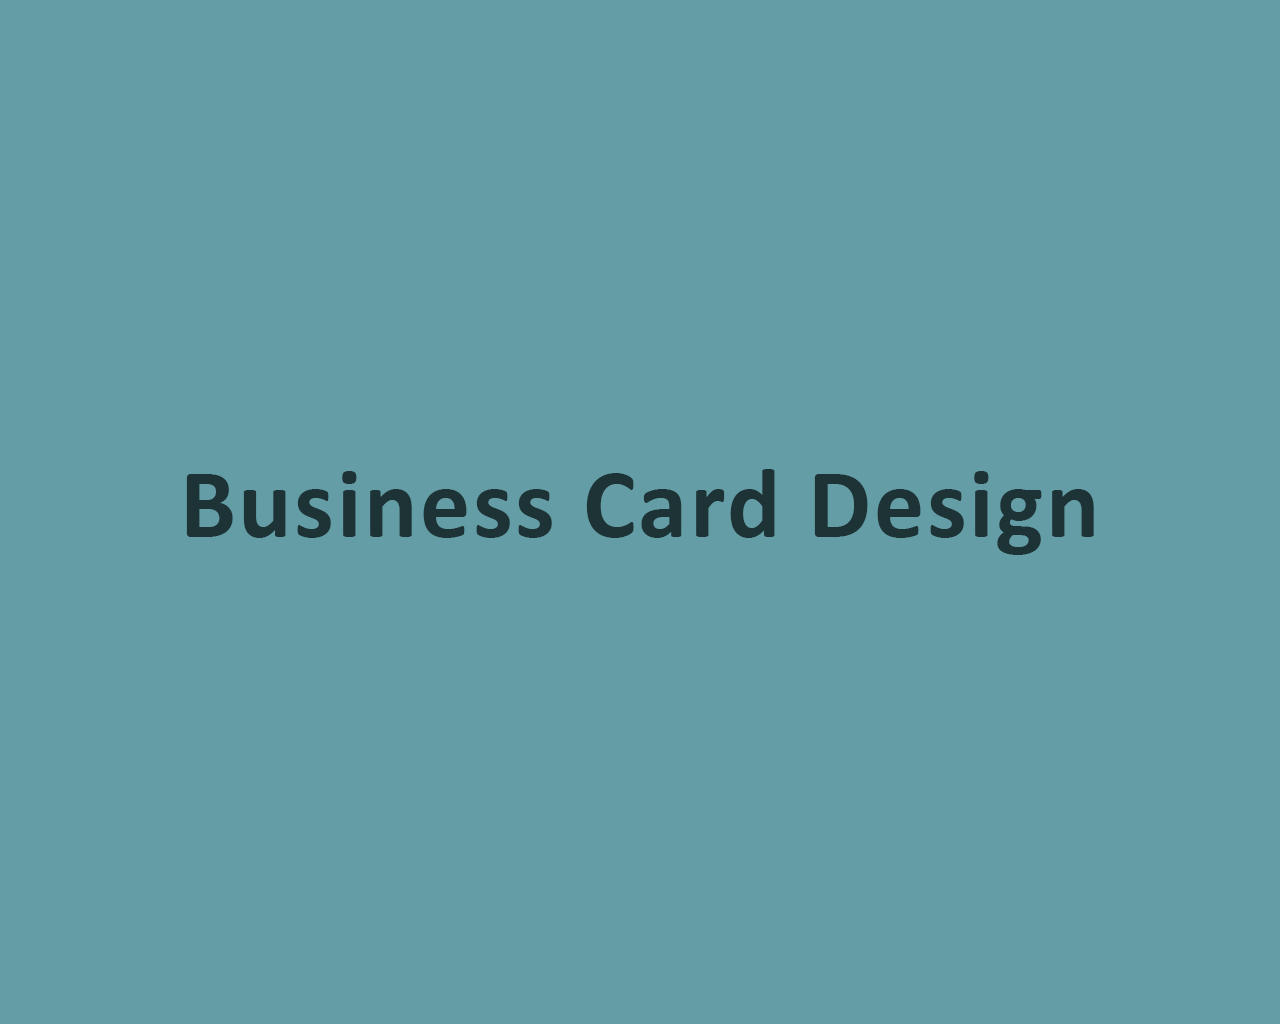 Business Card Design by odiusfly - 105963